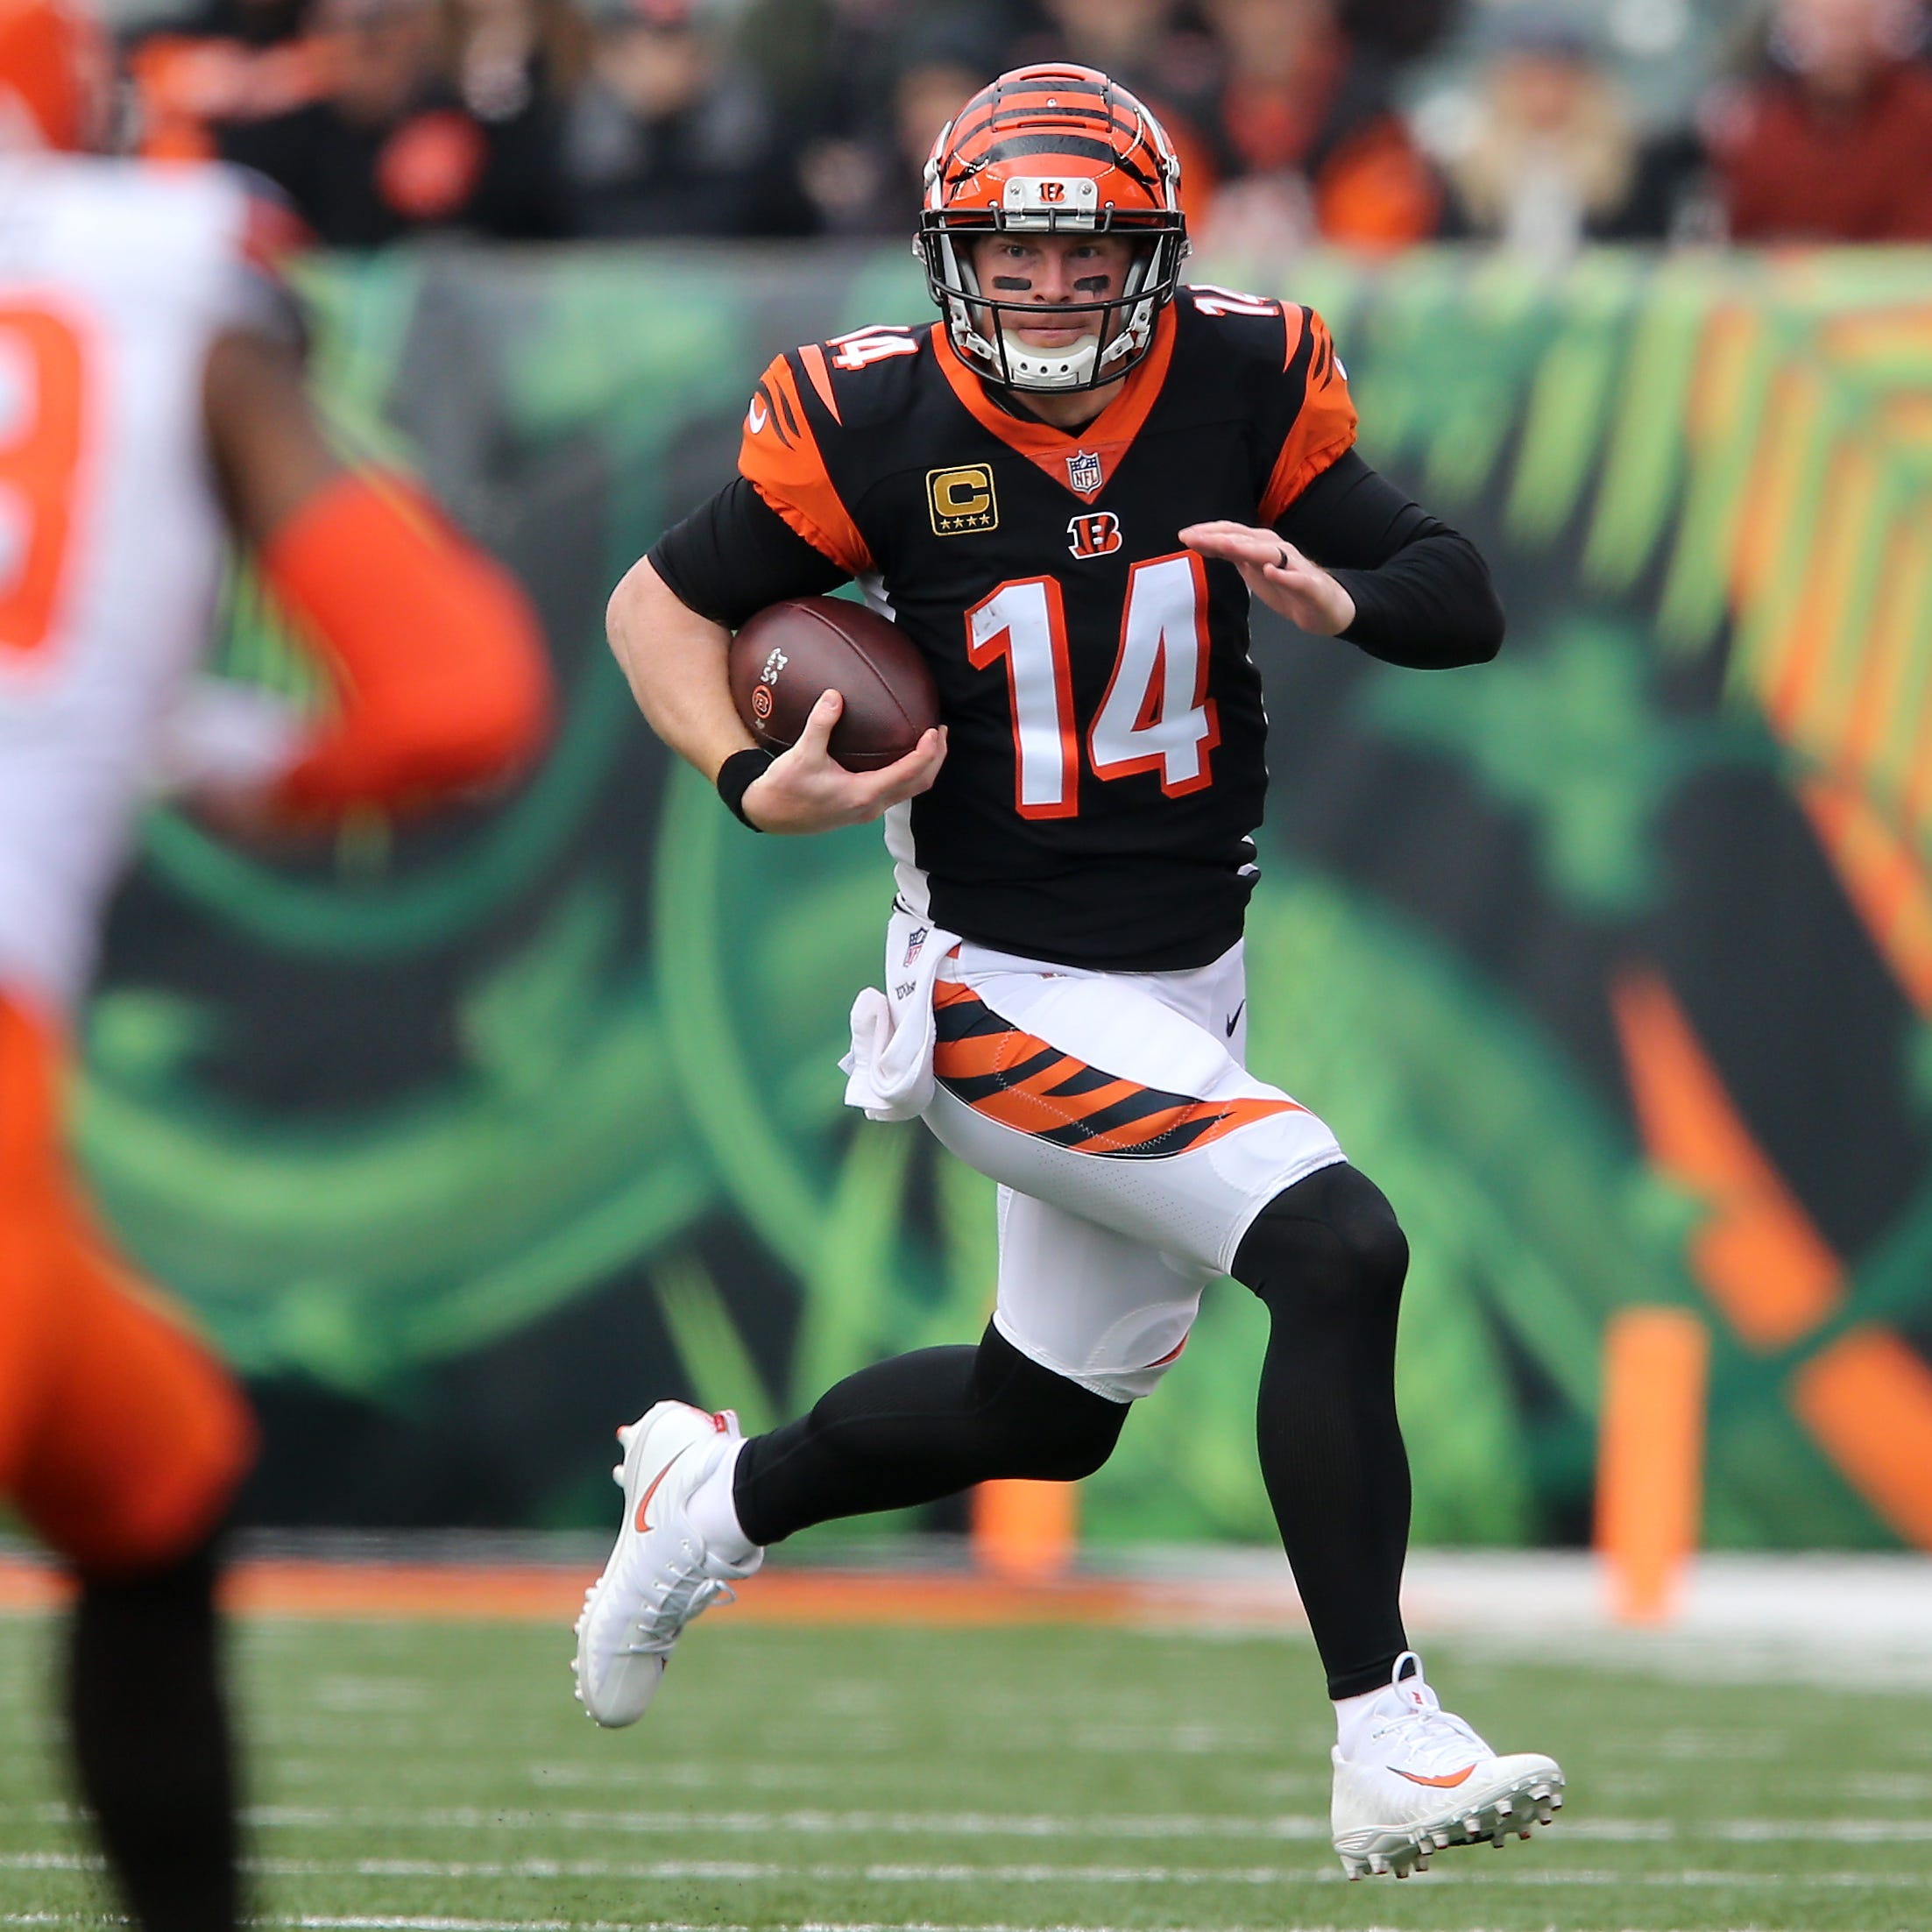 NFL.com's Schein: Cincinnati Bengals' Andy Dalton will have 'best season' under Zac Taylor